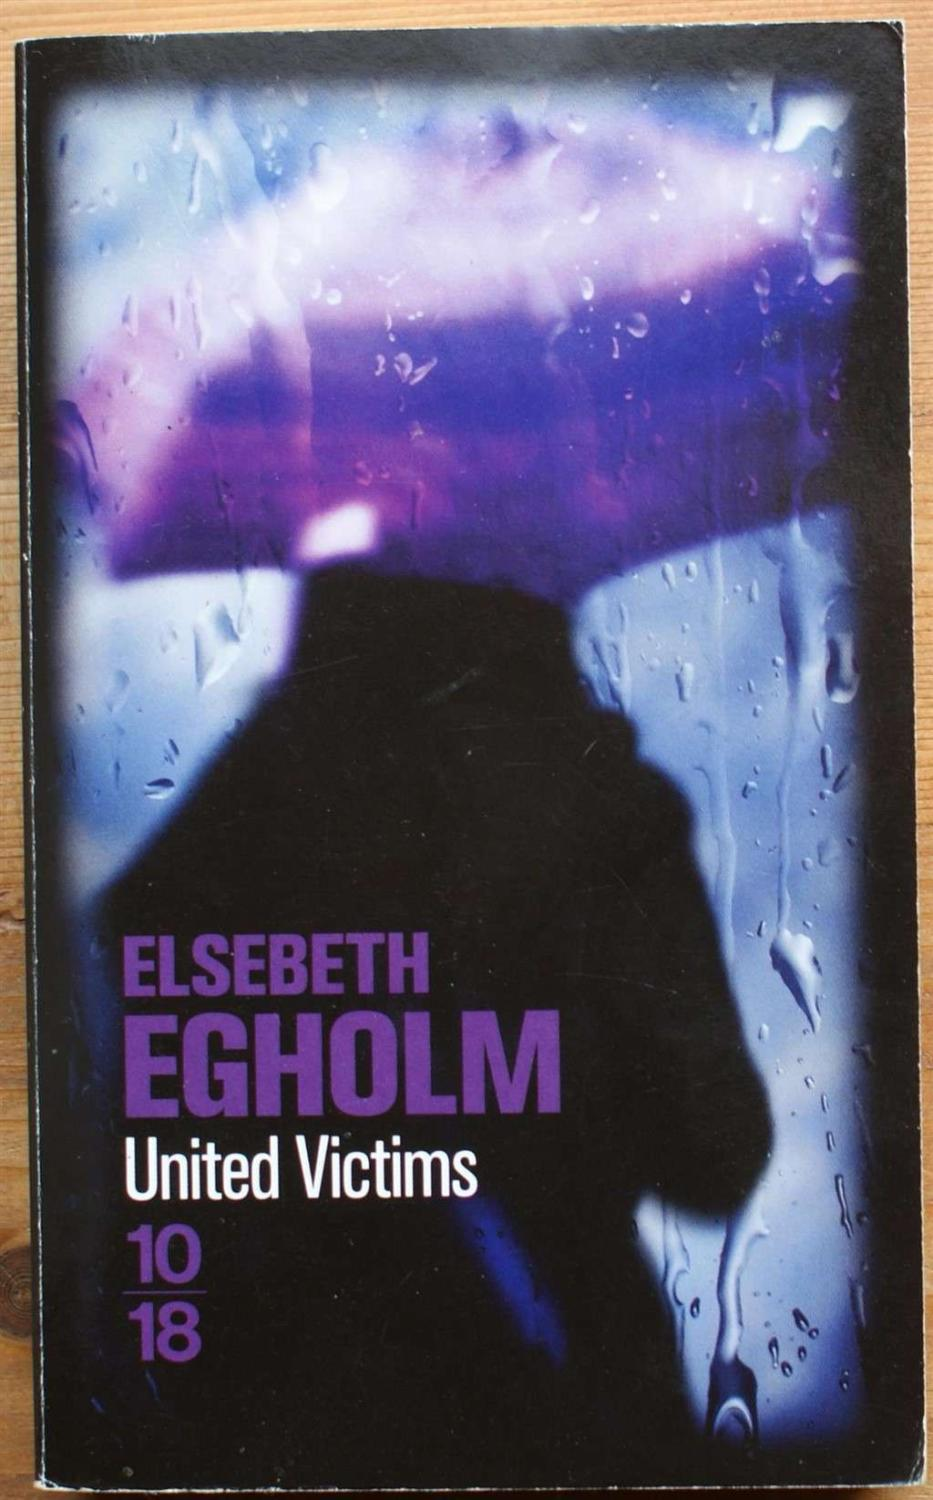 United victims - Elsebeth Egholm